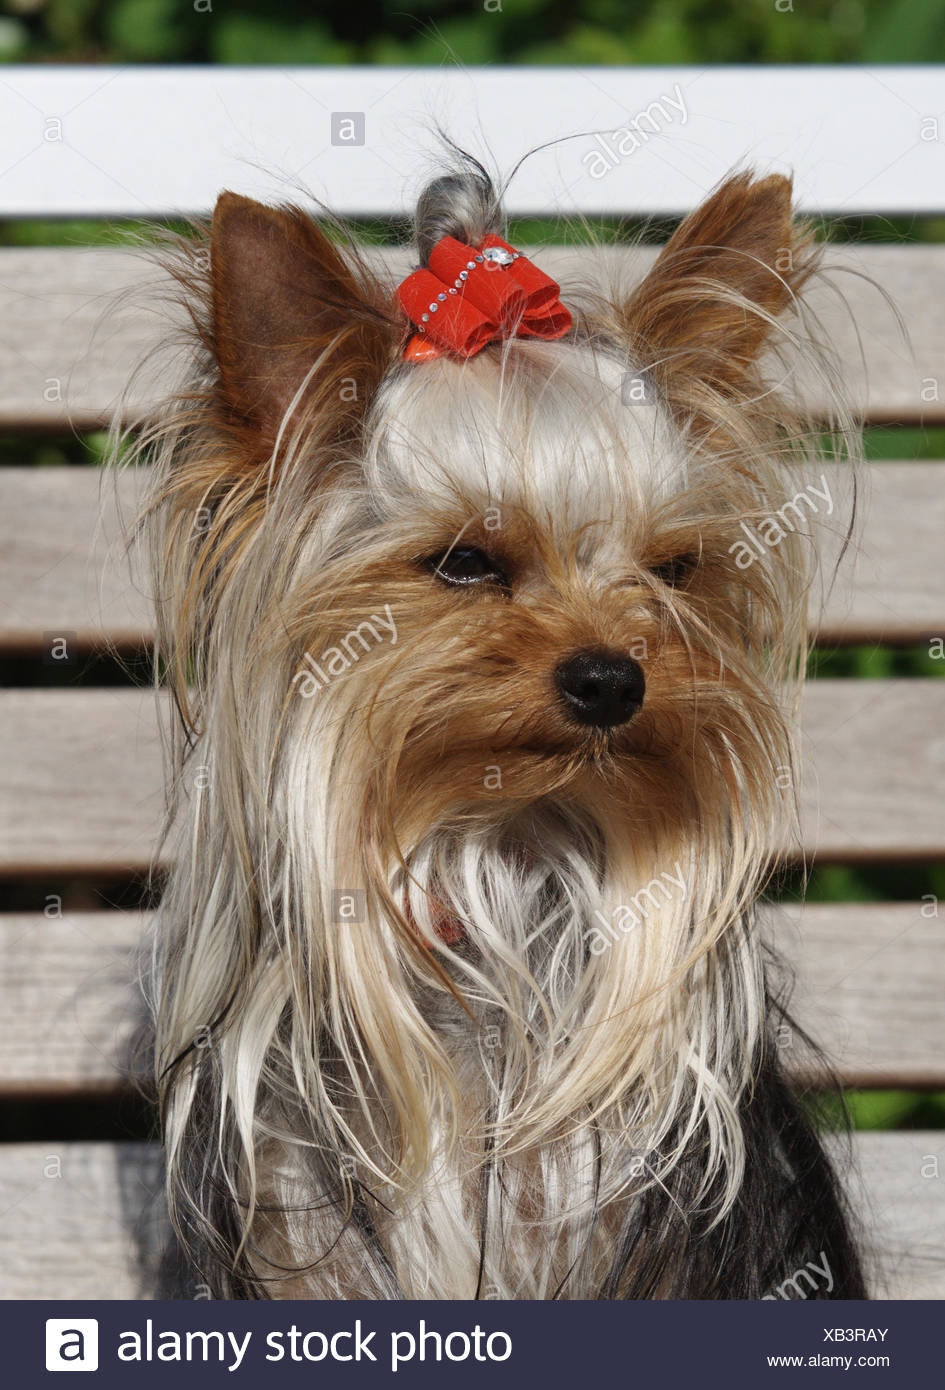 Yorkshire Terrier (Canis lupus f. familiaris), portrait, sitting on a wooden bench with a red ribbon in the hair, Germany Stock Photo